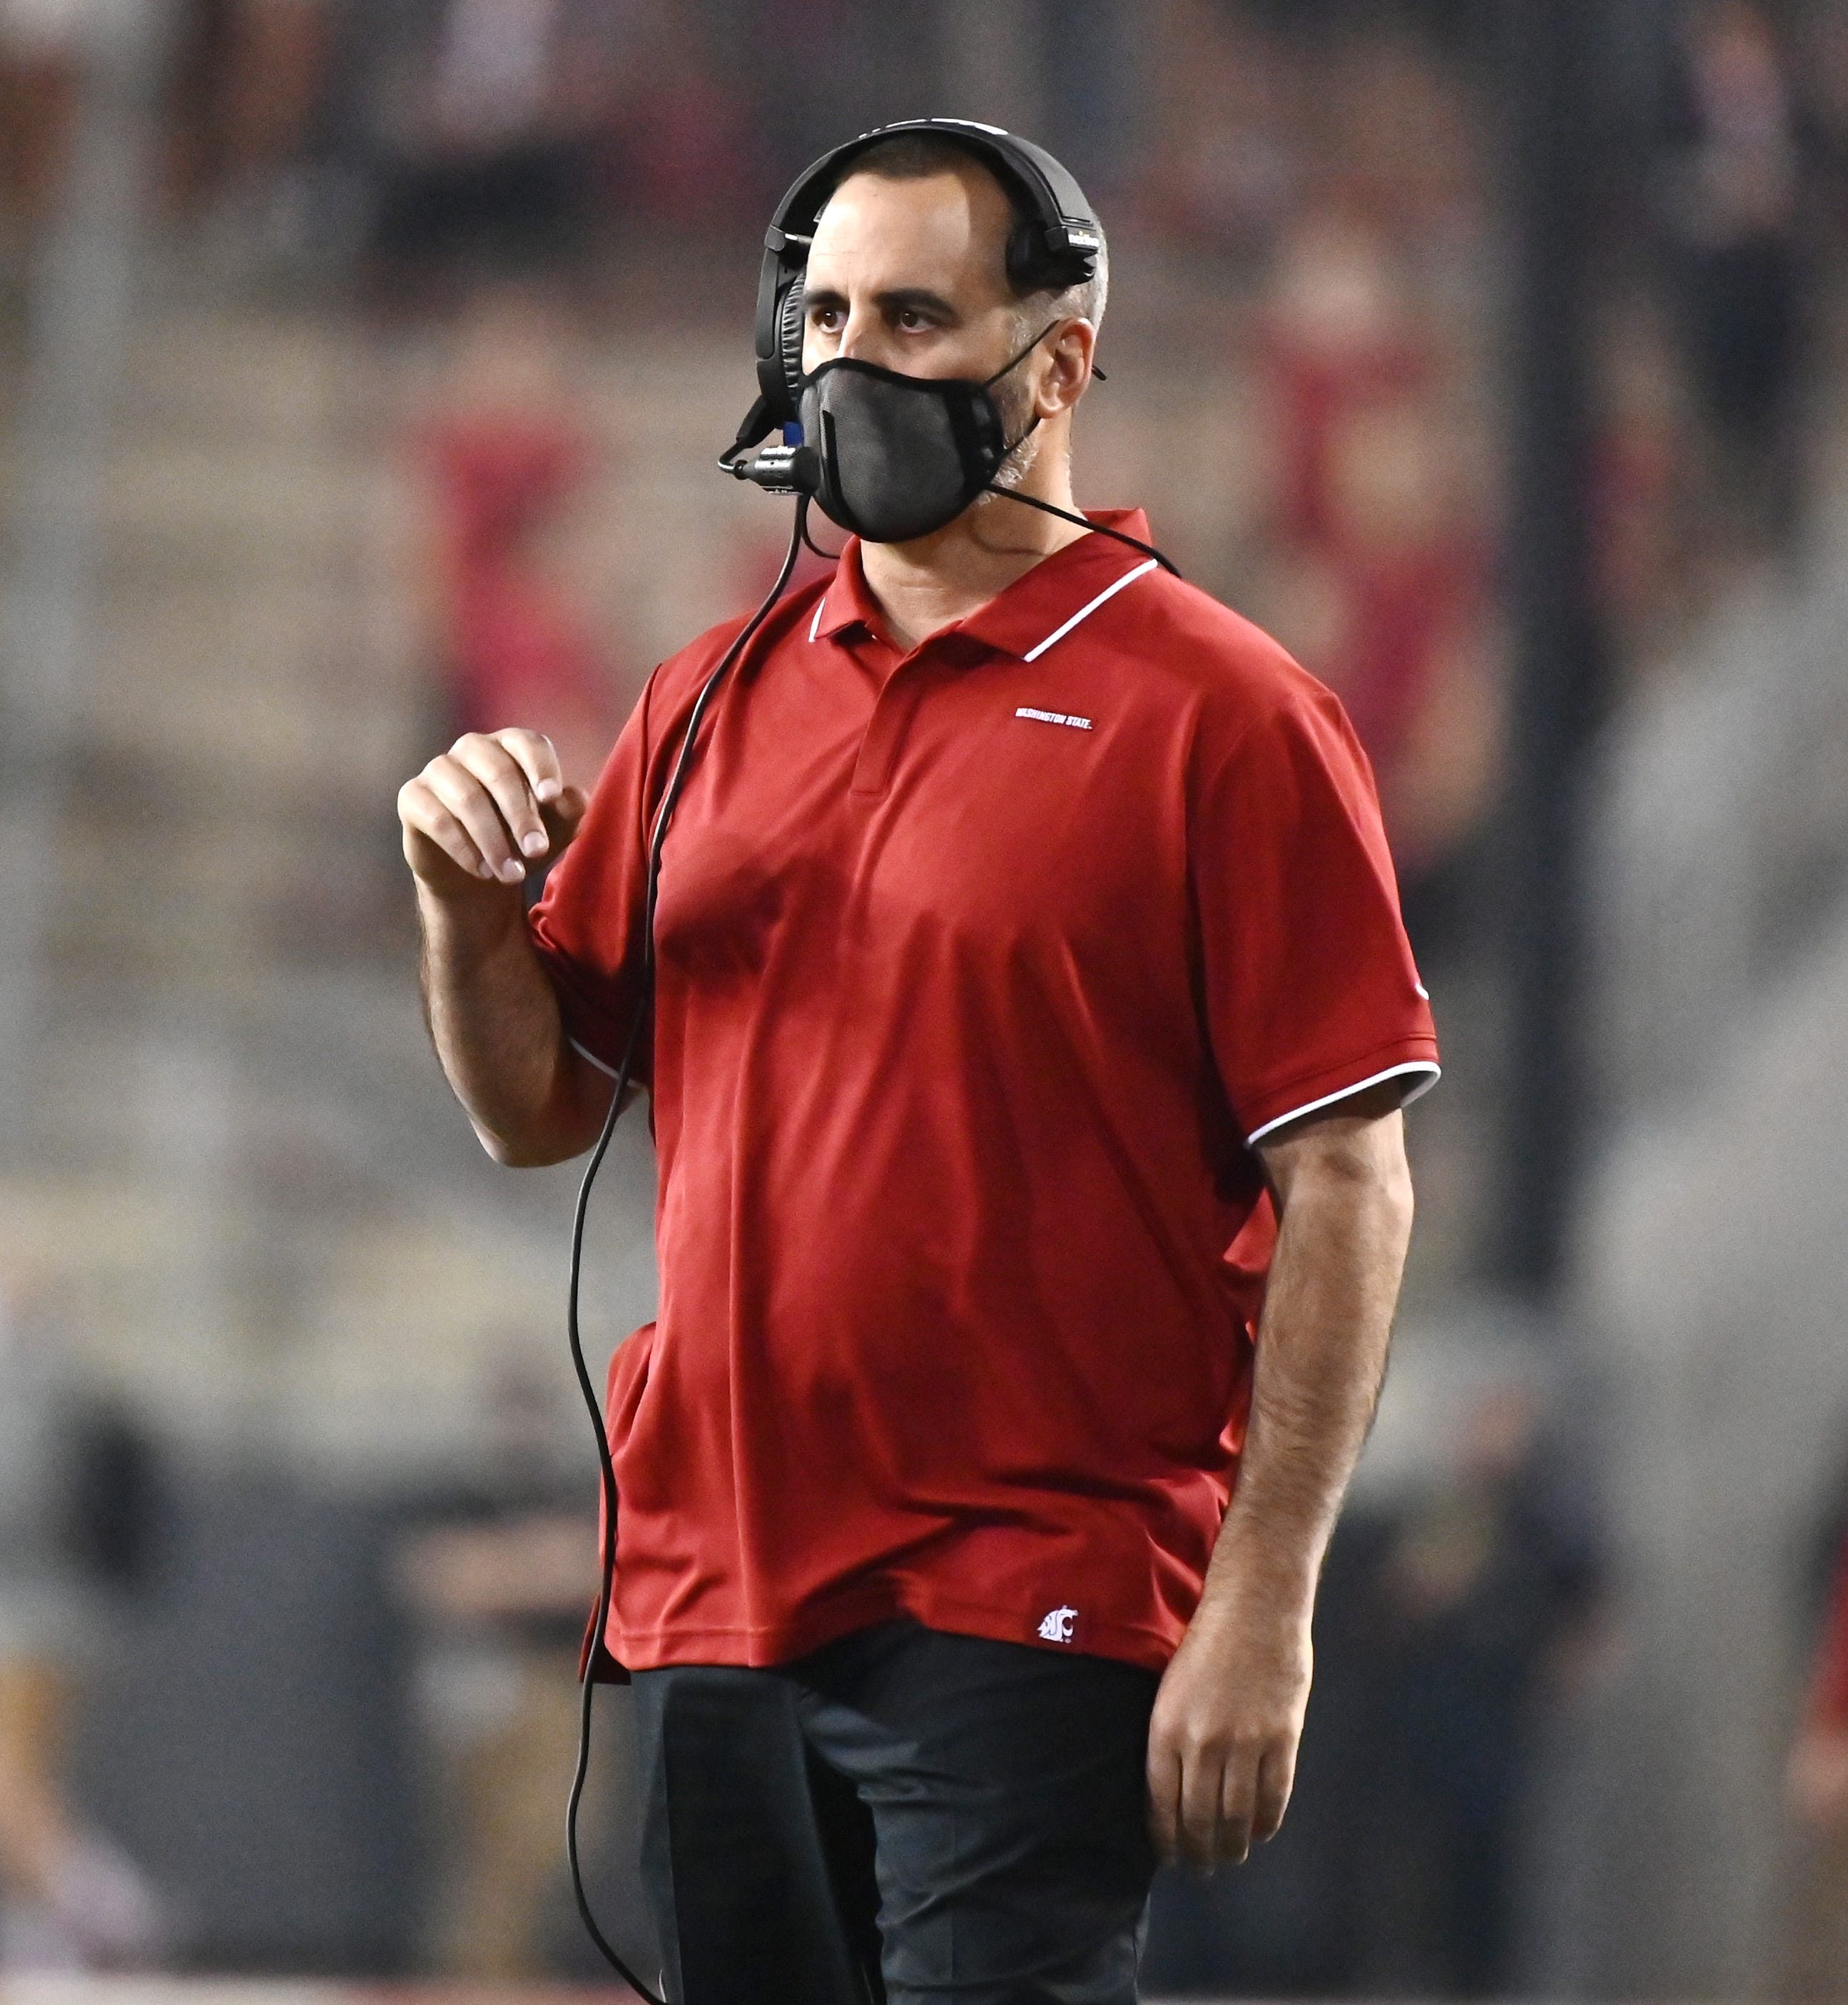 Washington State coach Rolovich confirms he is seeking religious exemption from COVID-19 vaccine mandate